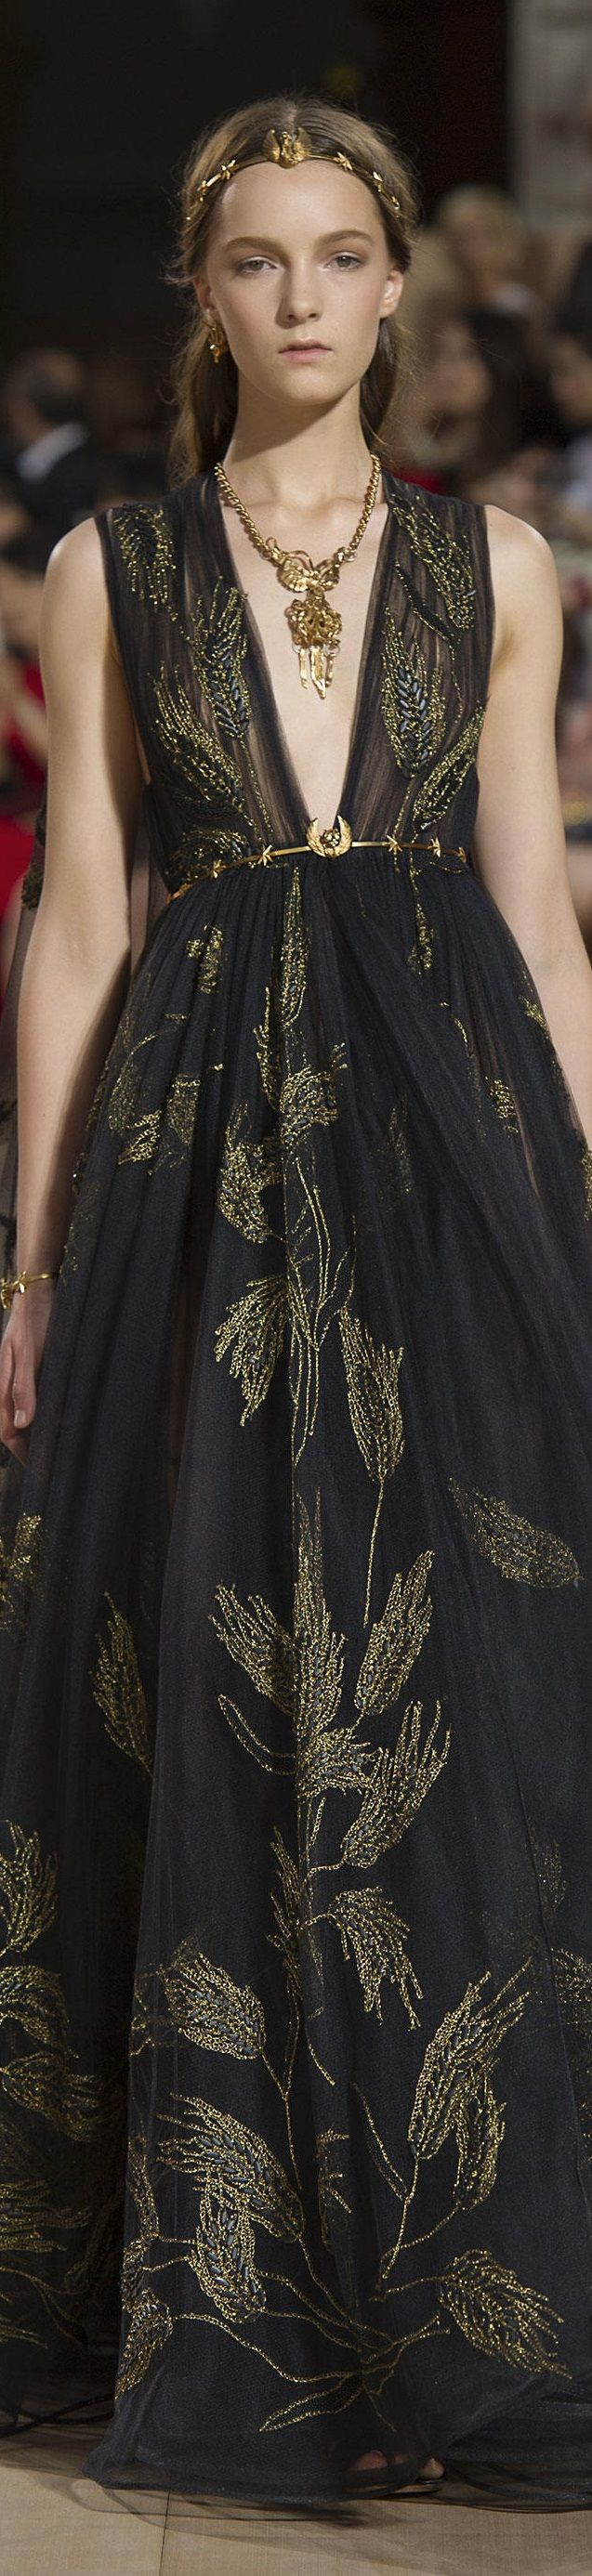 Valentino FW 2015 couture www.valentino.com...loving this collection, especially the jewels!!!